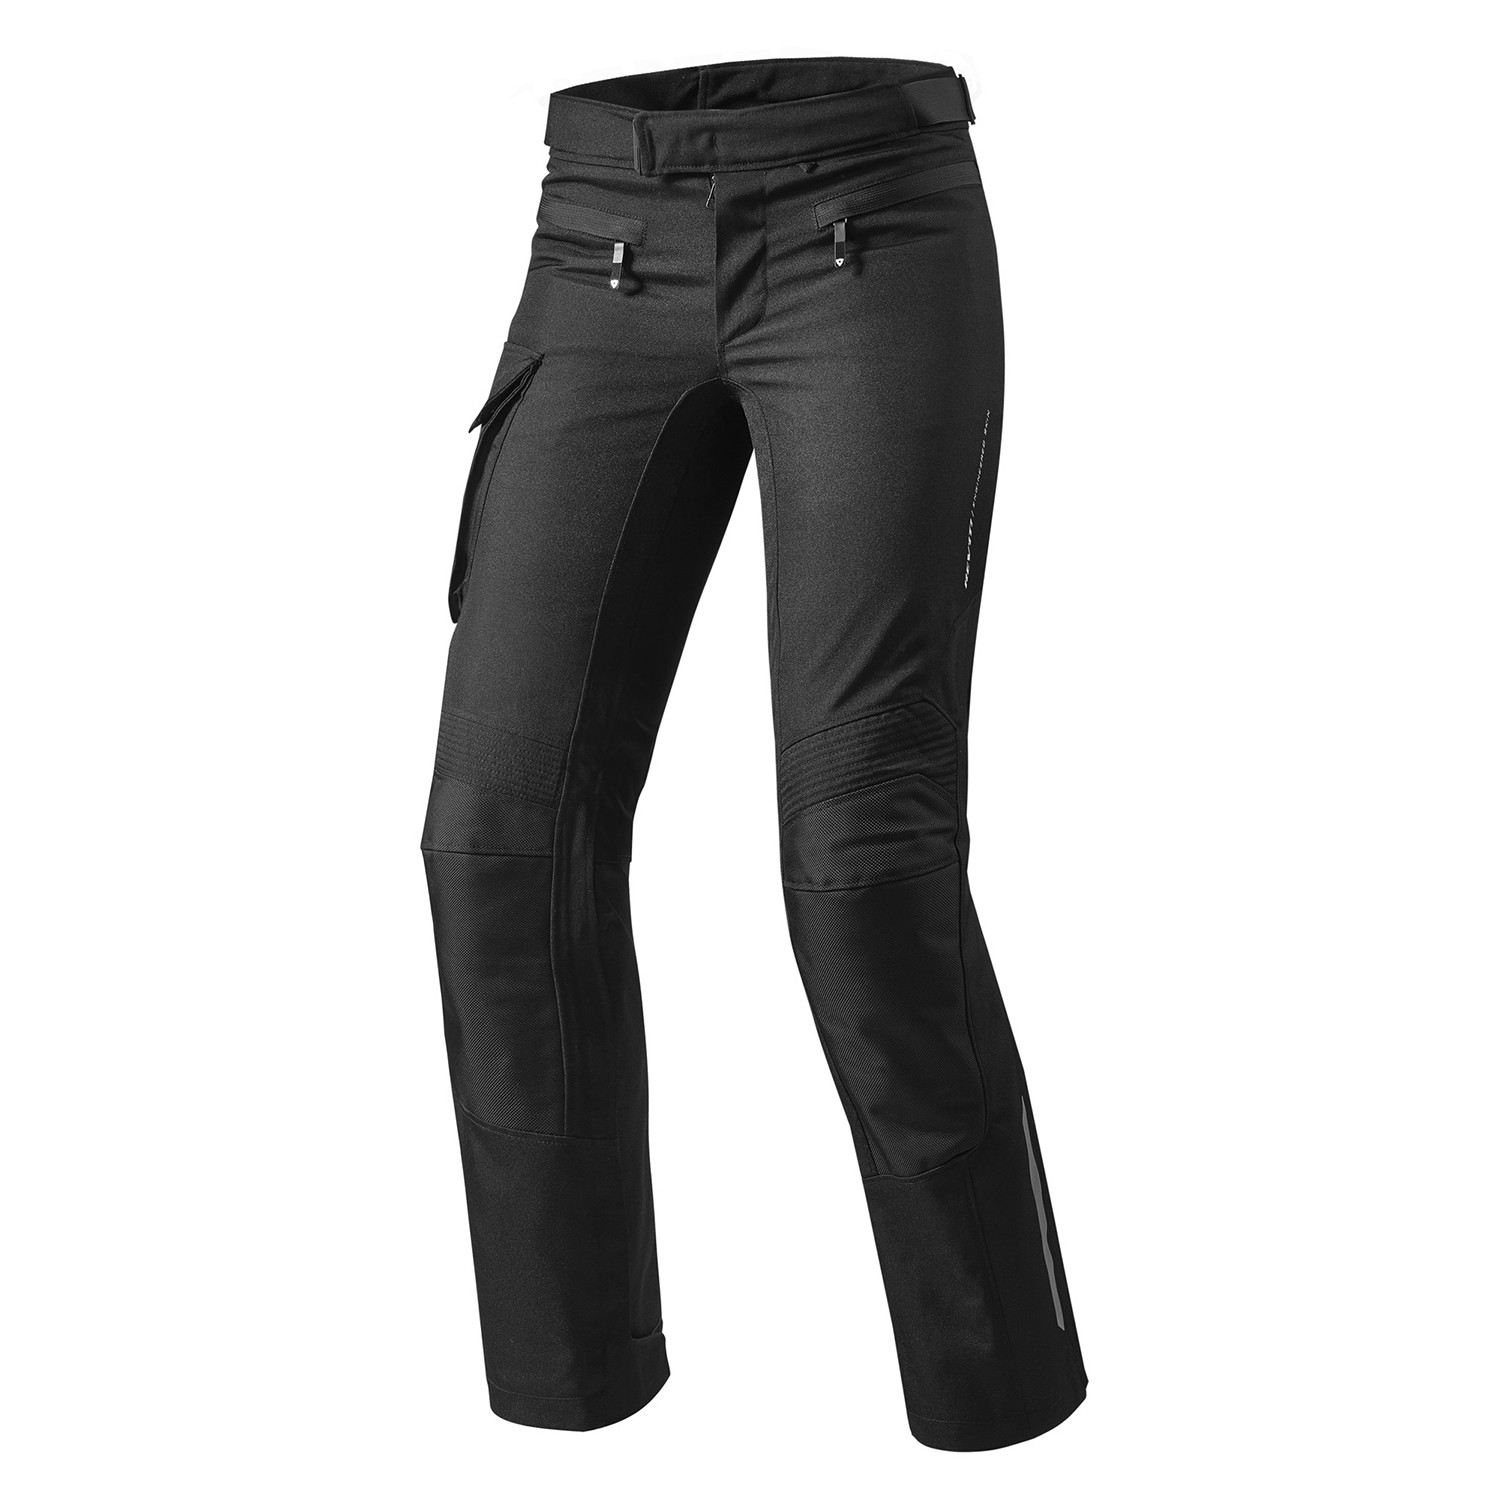 Pantalon de Turismo Impermeable Revit Enterprise 2 Mujer